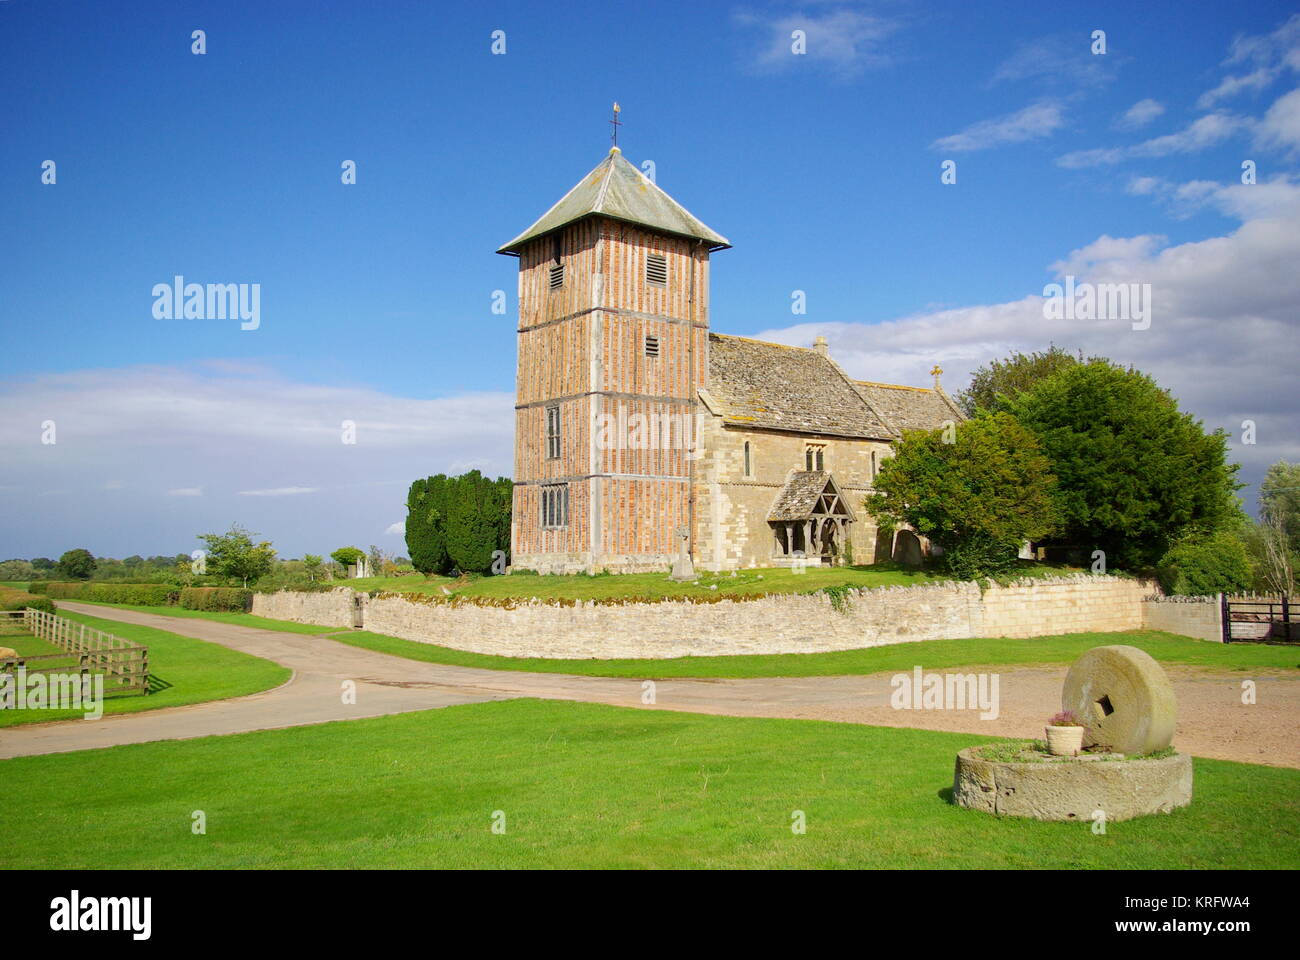 Parish church of St Mary the Virgin, a Grade I listed building in the village of Upleadon, Gloucestershire, dating - Stock Image